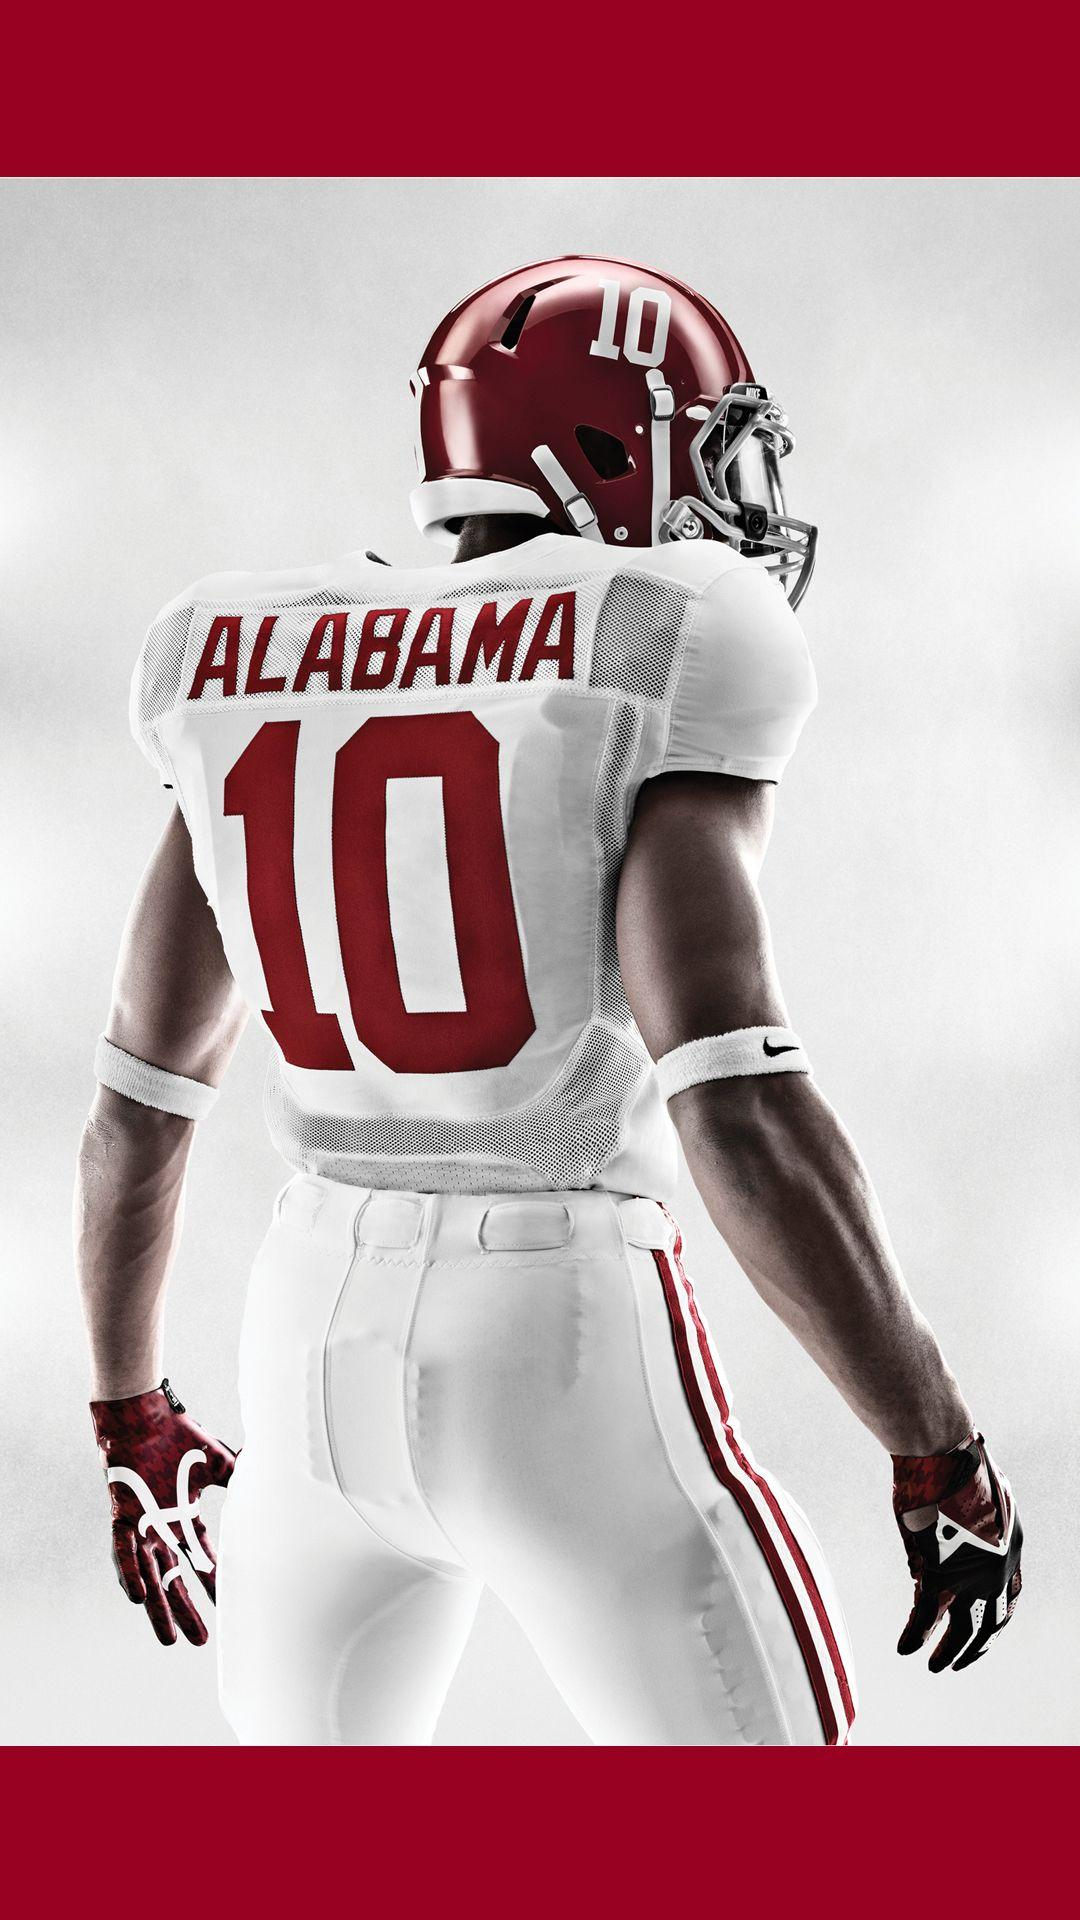 Free Alabama Wallpapers For Mobile Phones with Nike Jersey